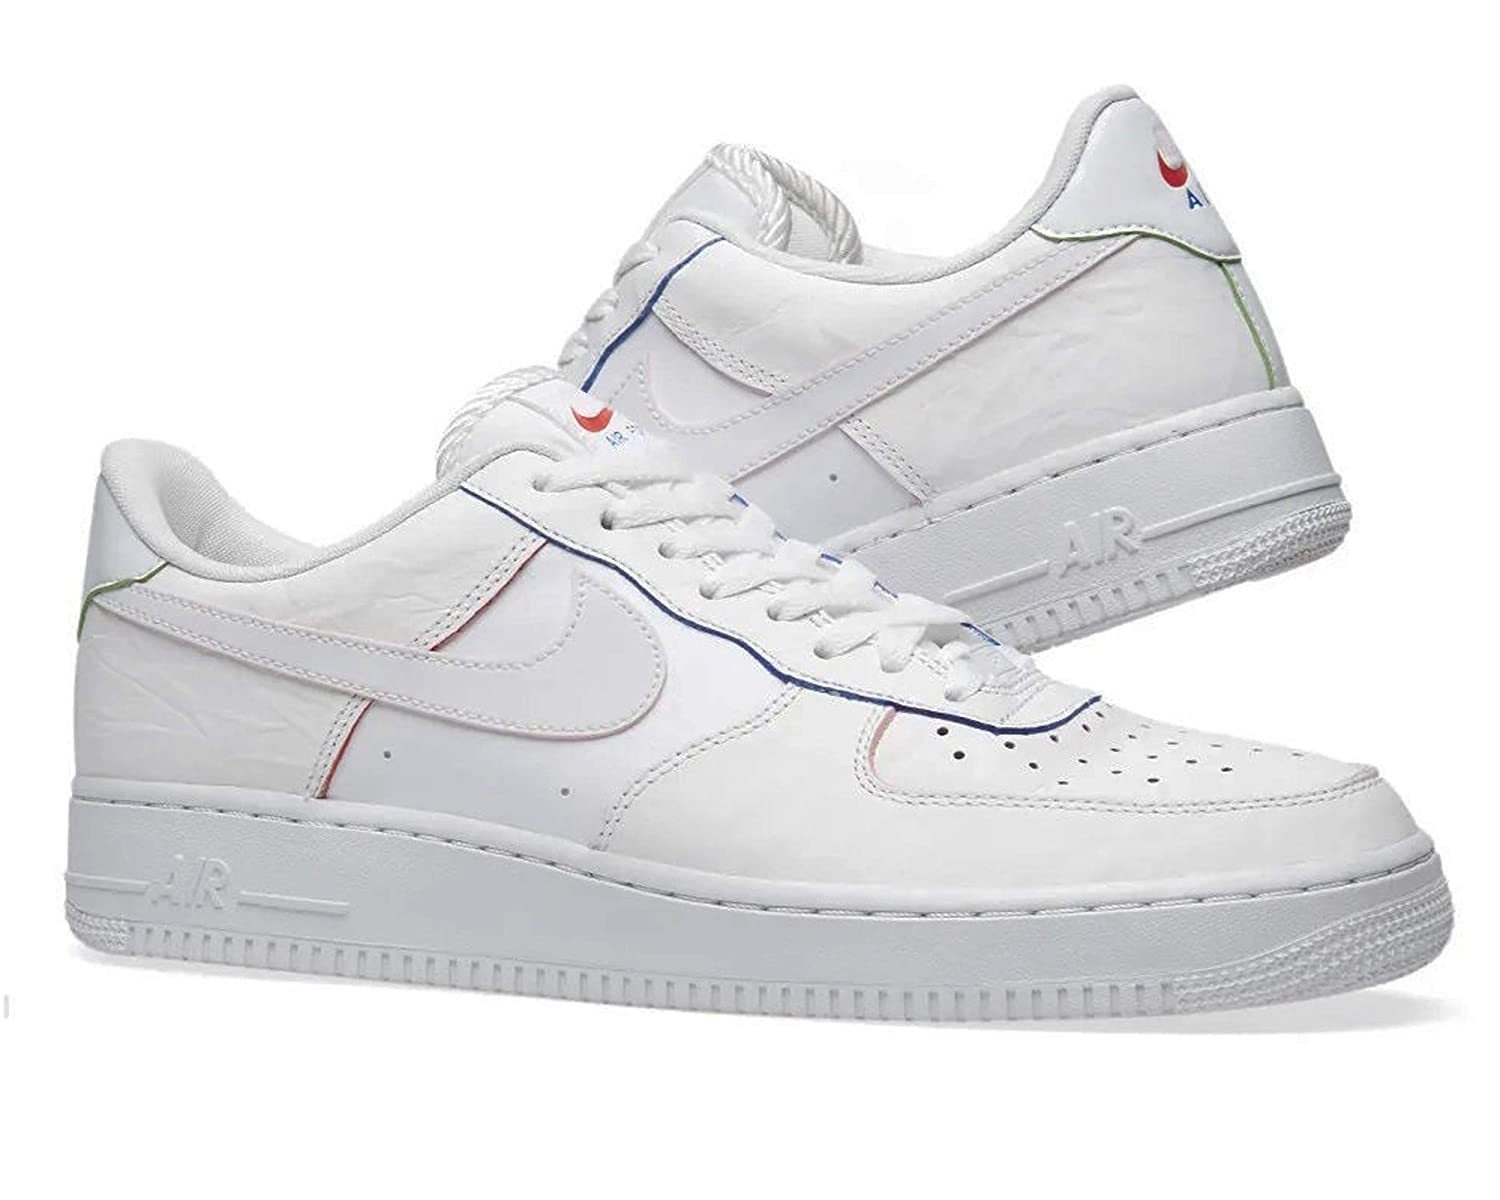 Nike Damen Original Air Force 1 Low Sneaker Weiß AQ4139 100